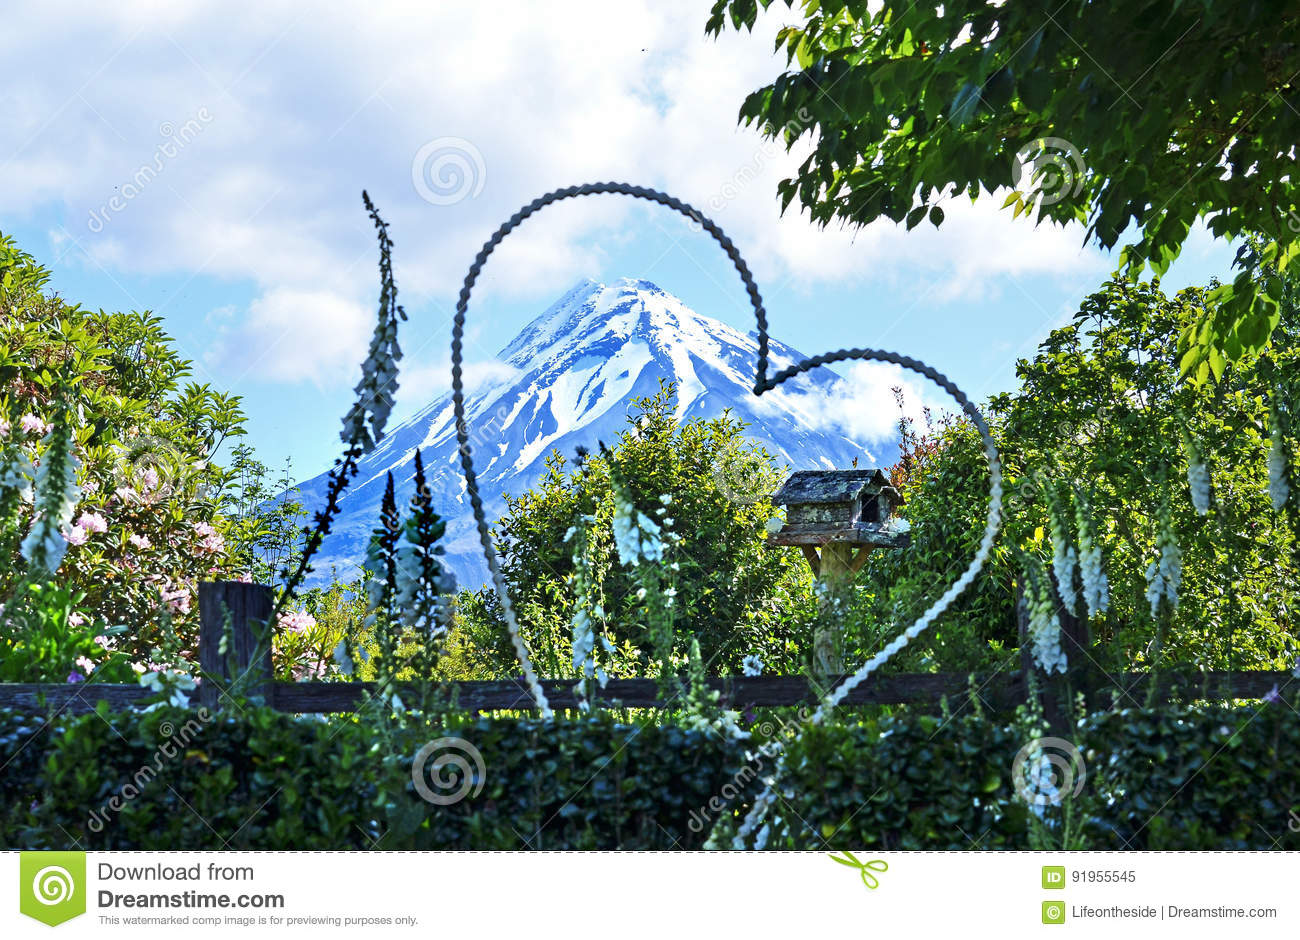 Garden wedding setting & giant floral heart front of snow capped mountain